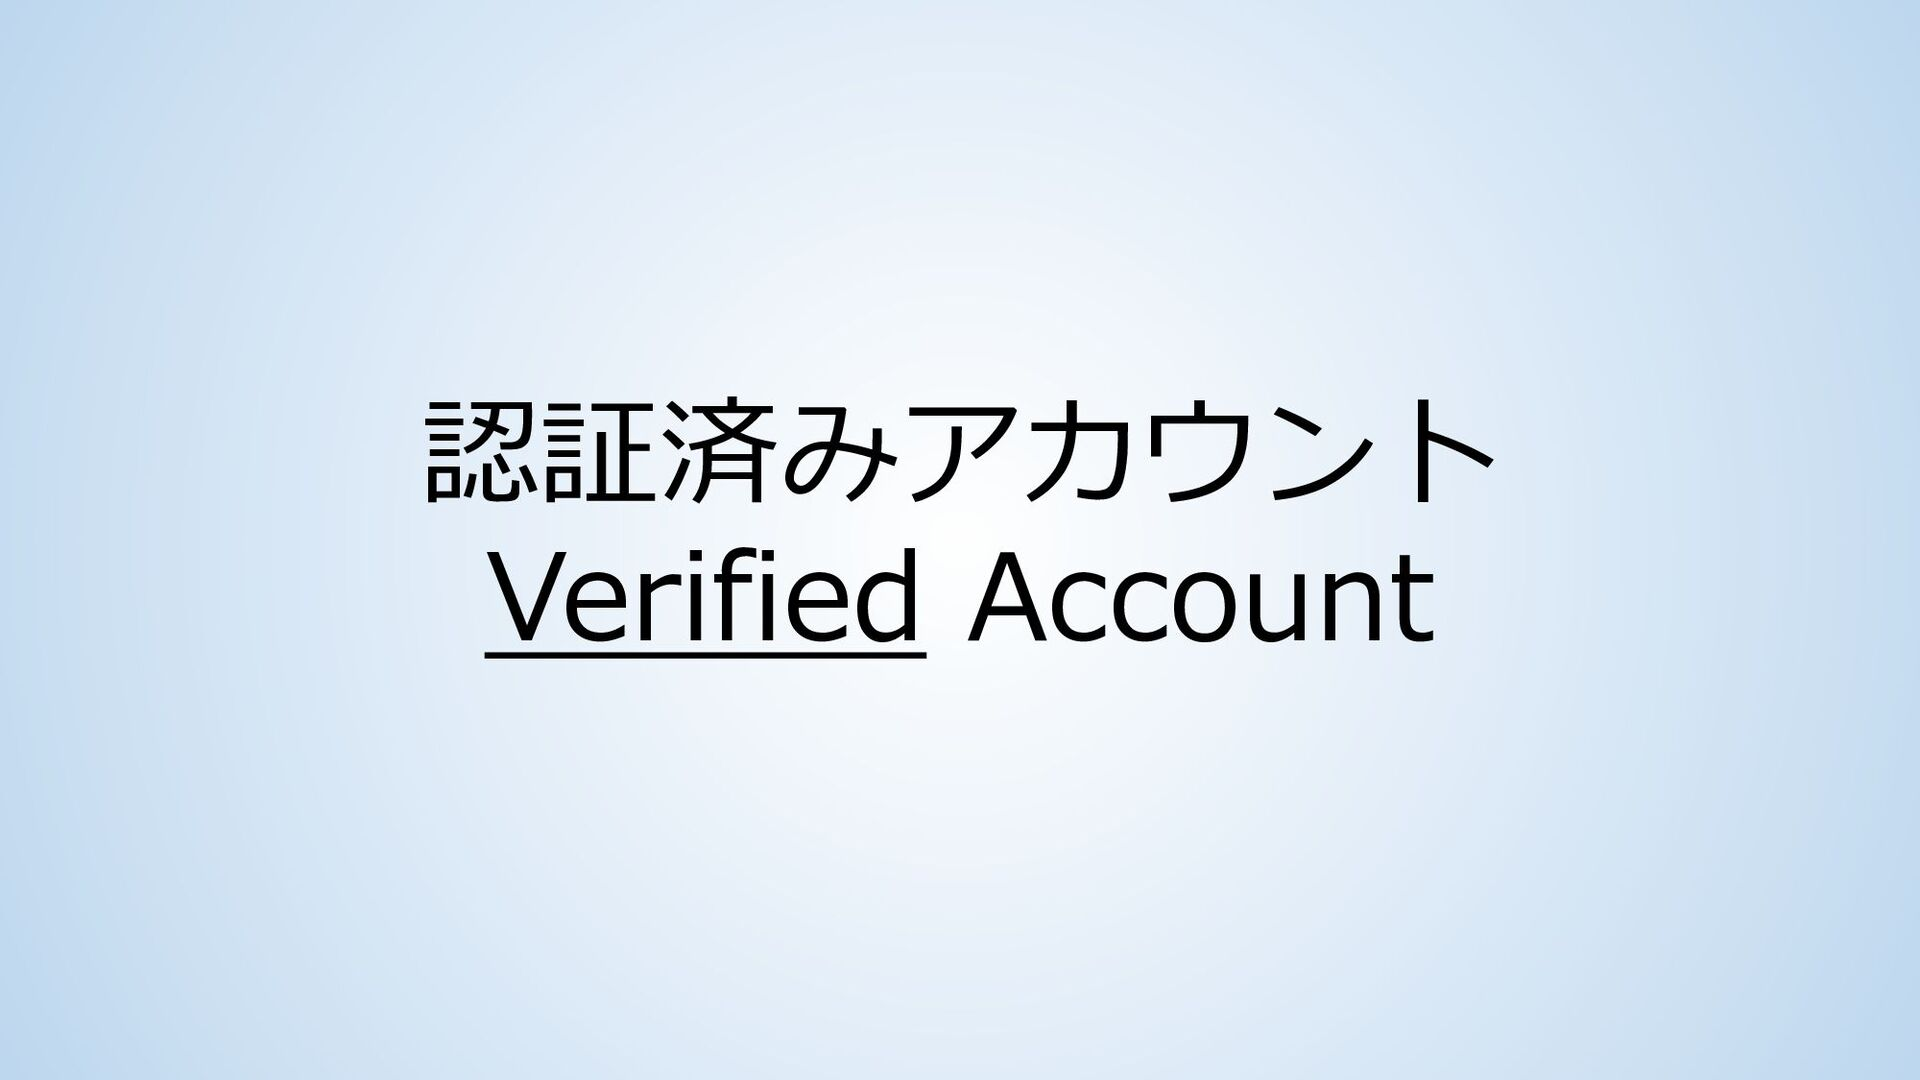 (通称) 技適認証 Technical Standards Conformity Certif...